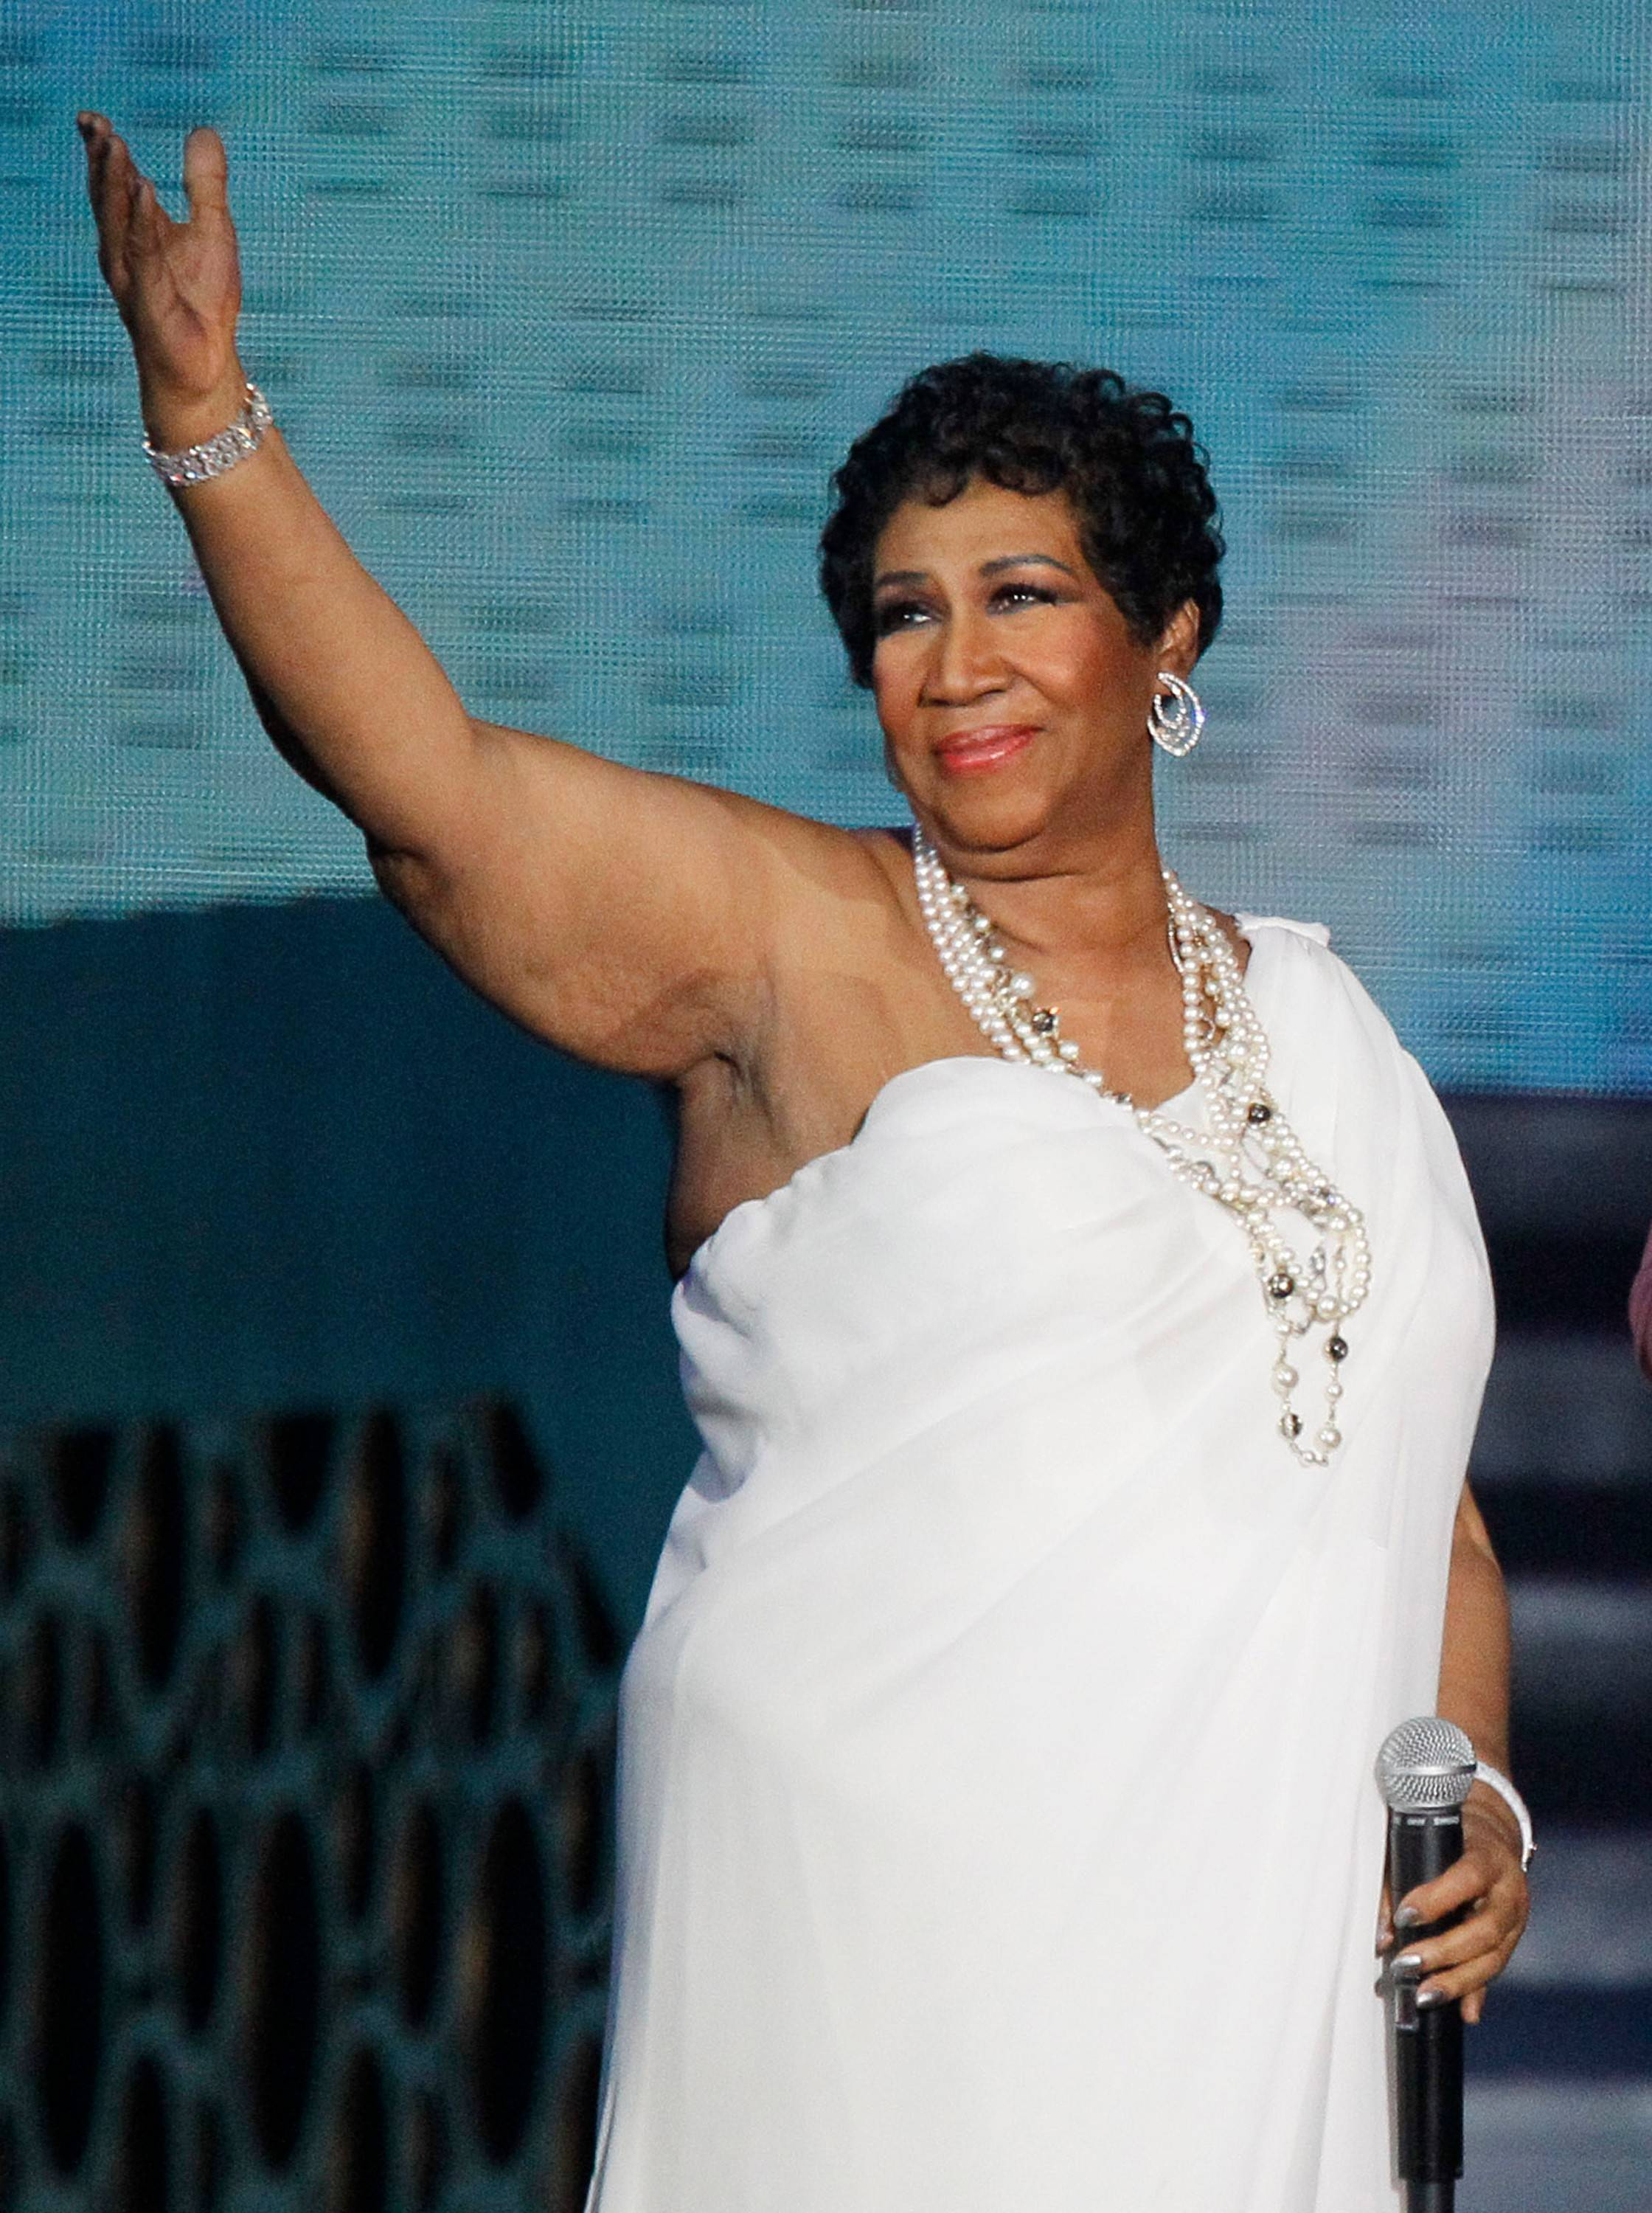 Singer Aretha Franklin performs at the Chicago Theatre on Saturday, May 3.